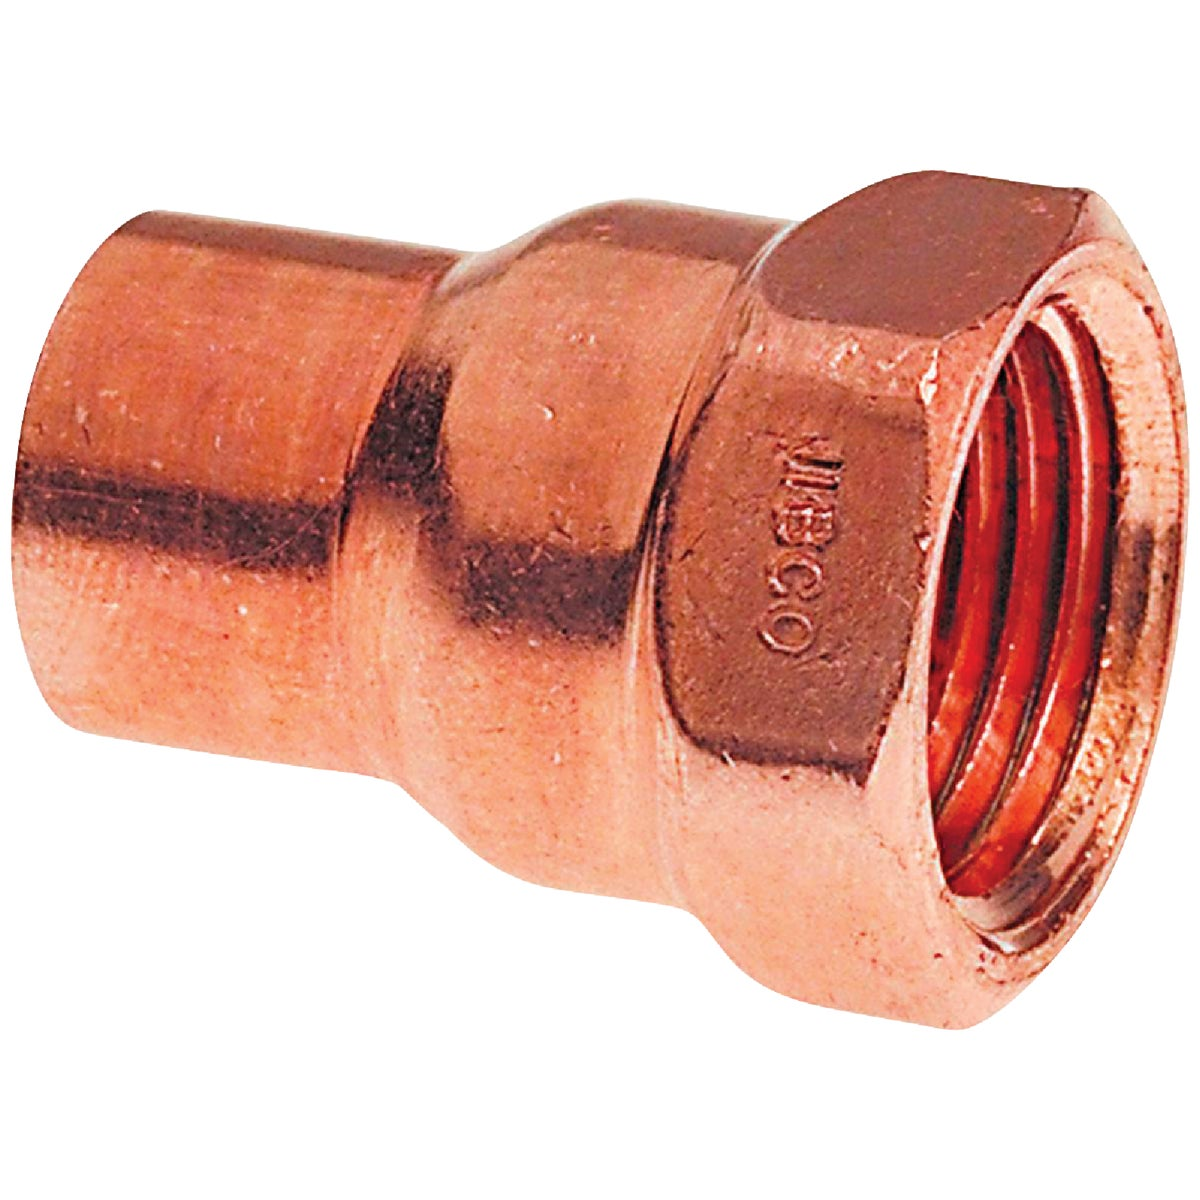 "1/2""CX1/4""F COUPLING - 30138 by Elkhart Prod Corp"